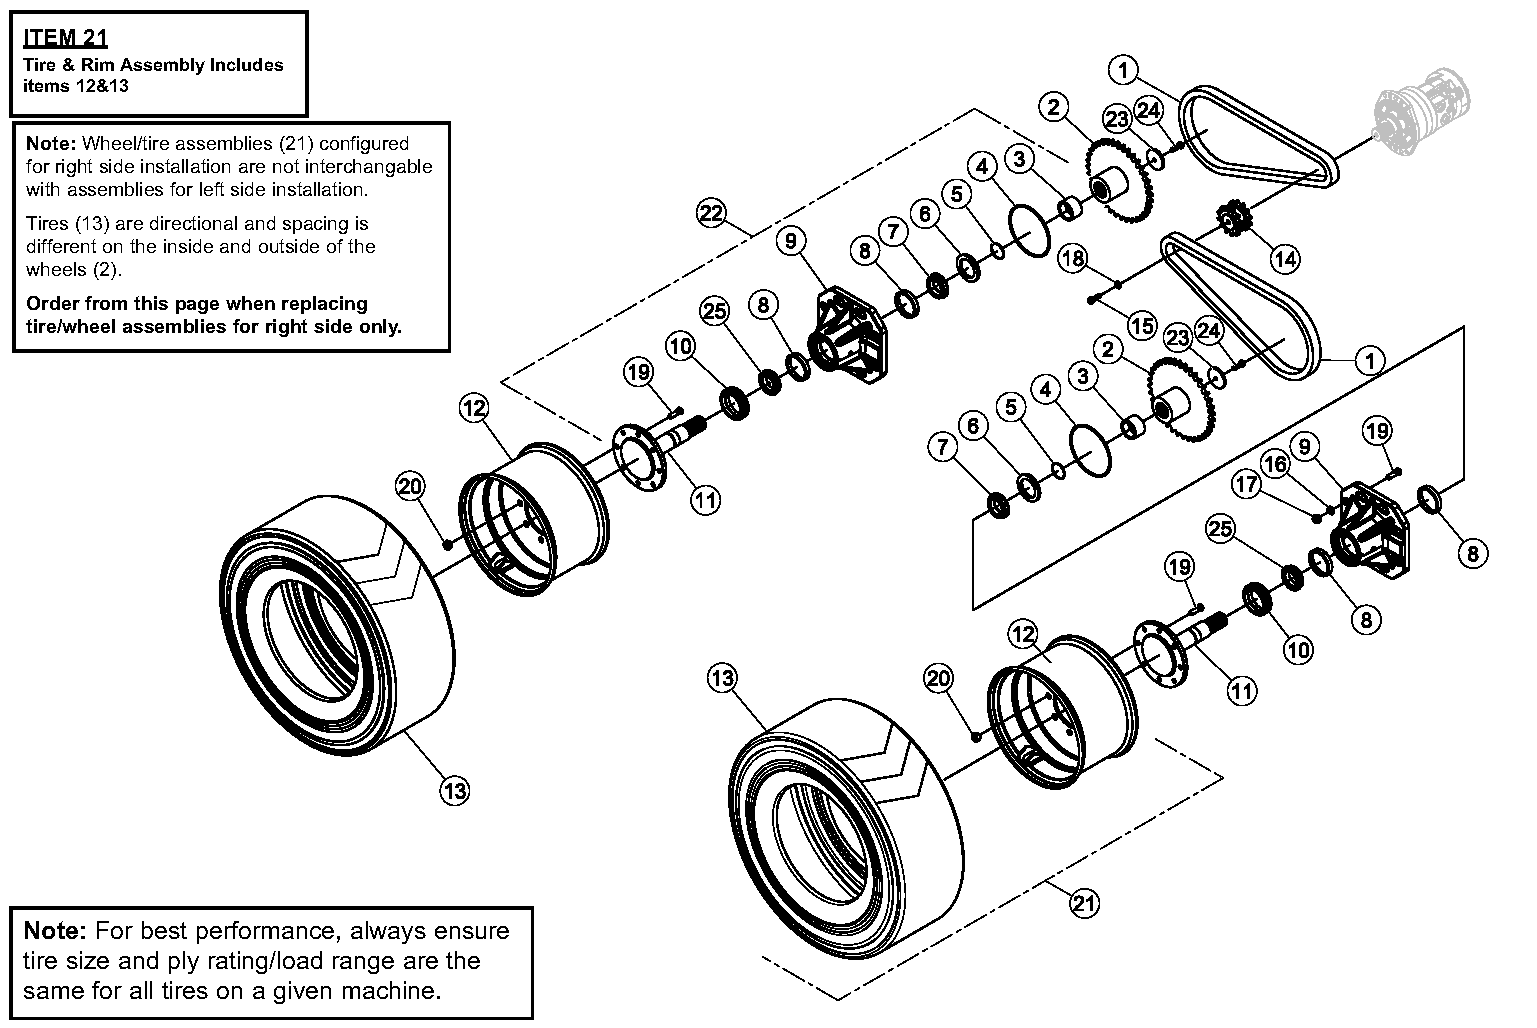 Diagram 5-1A Final Drive Assembly - Right Side